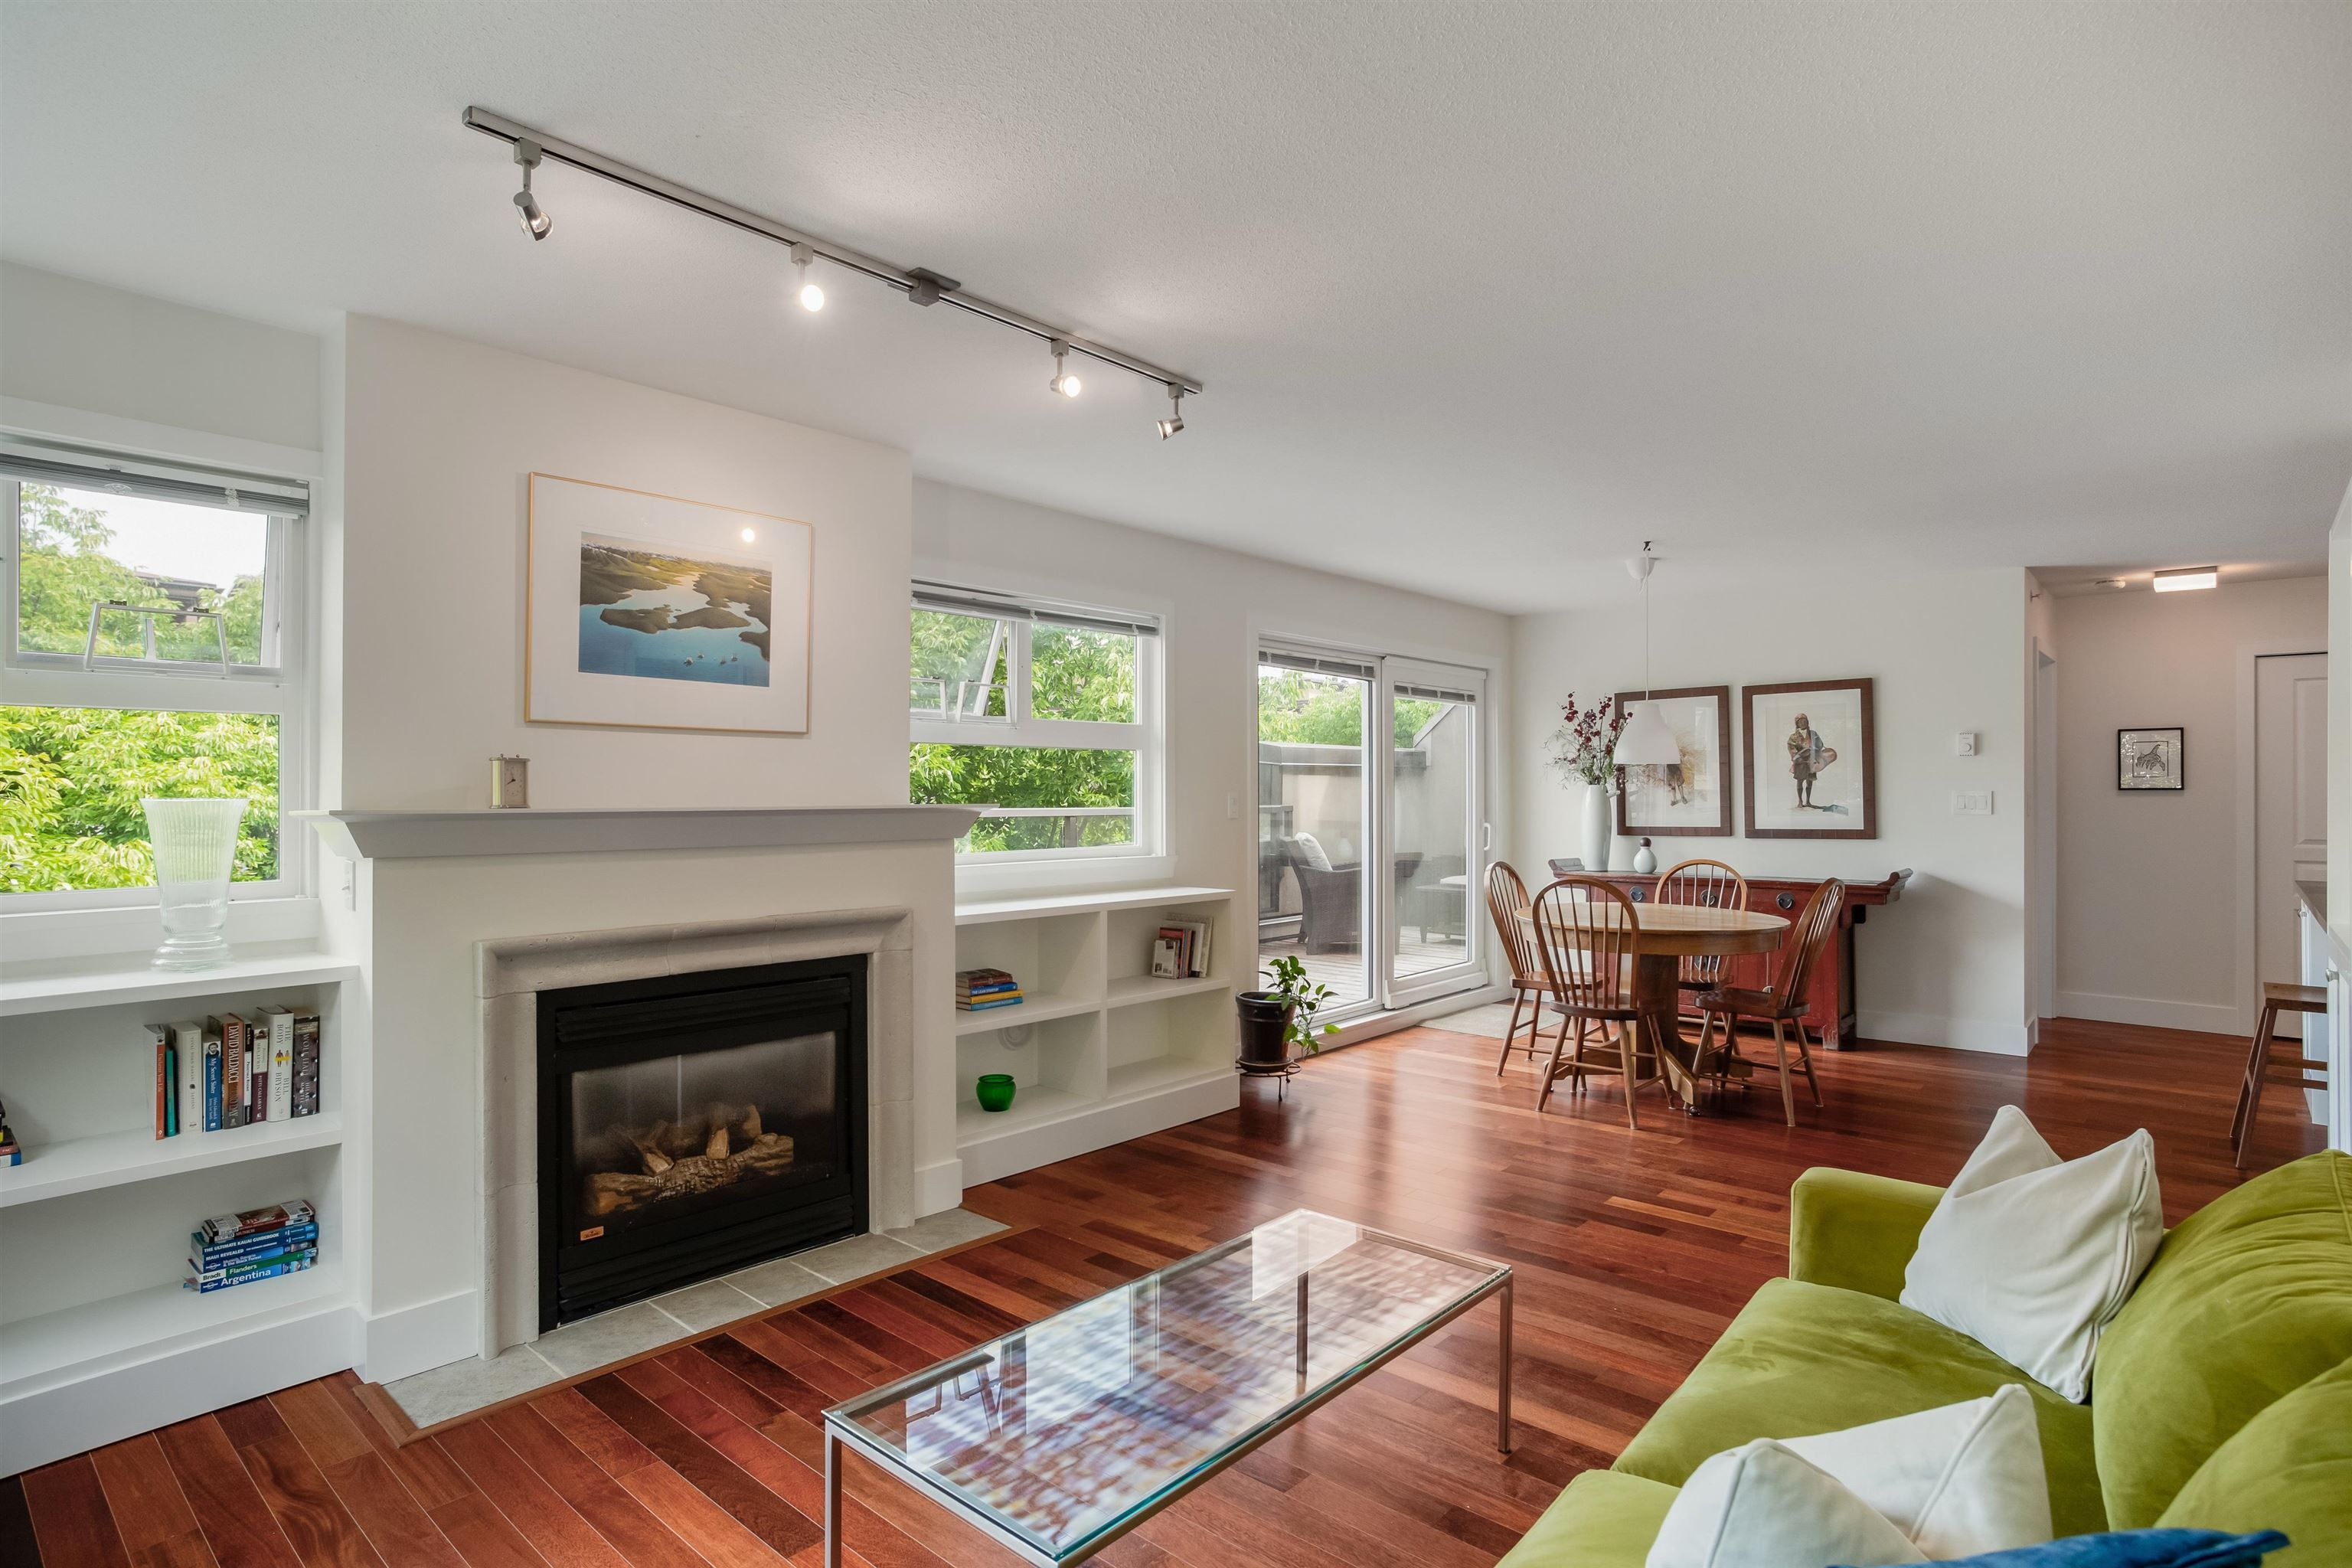 """Main Photo: 408 2181 W 12TH Avenue in Vancouver: Kitsilano Condo for sale in """"THE CARLINGS"""" (Vancouver West)  : MLS®# R2615089"""